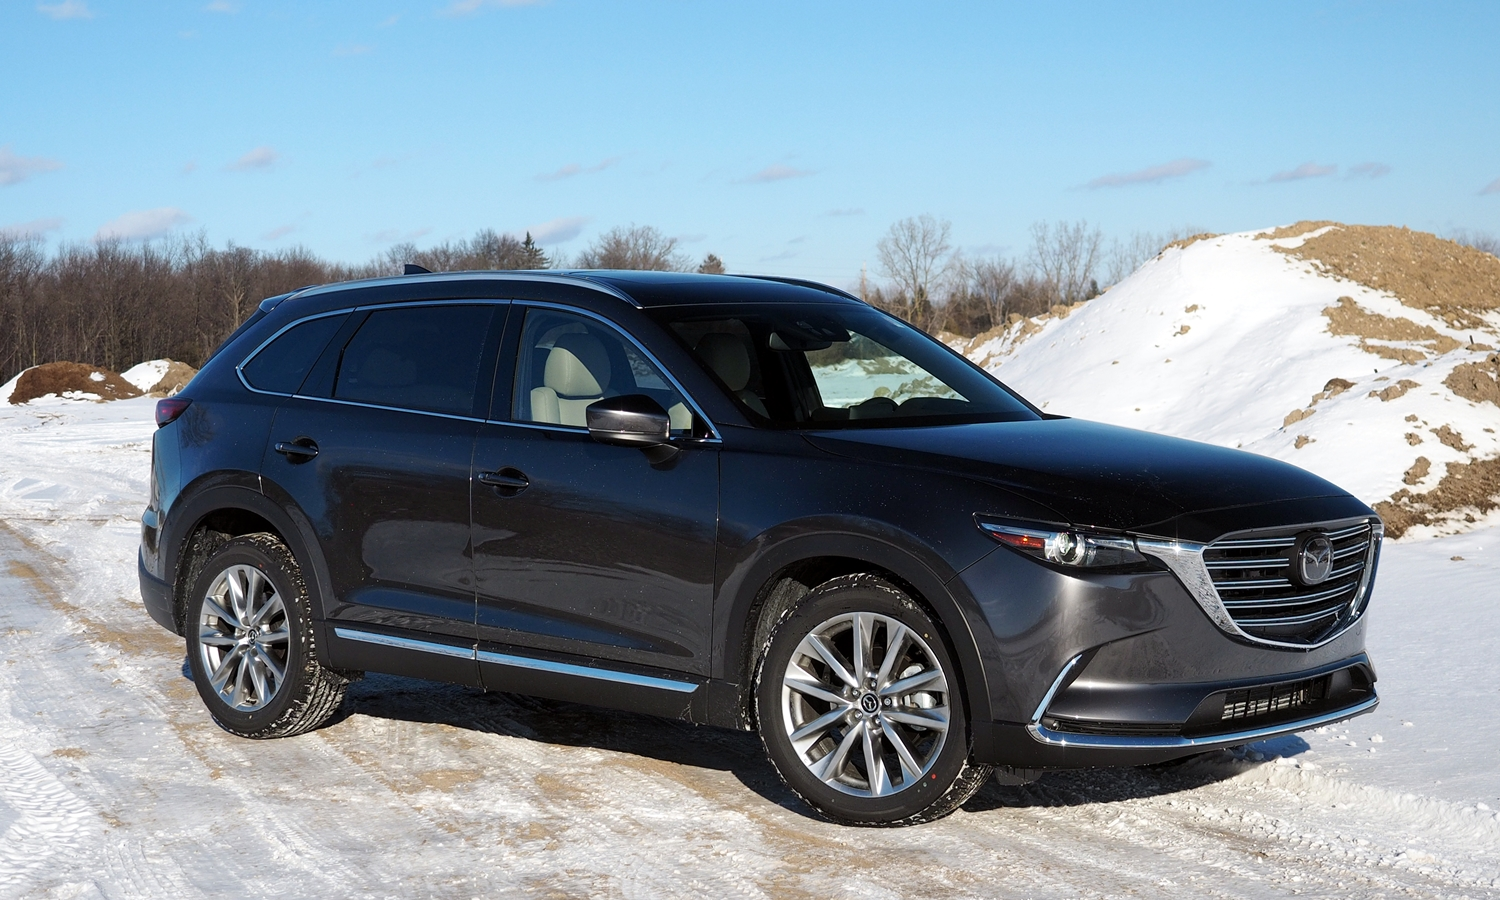 GMC Acadia Photos: 2016 Mazda CX-9 front quarter view